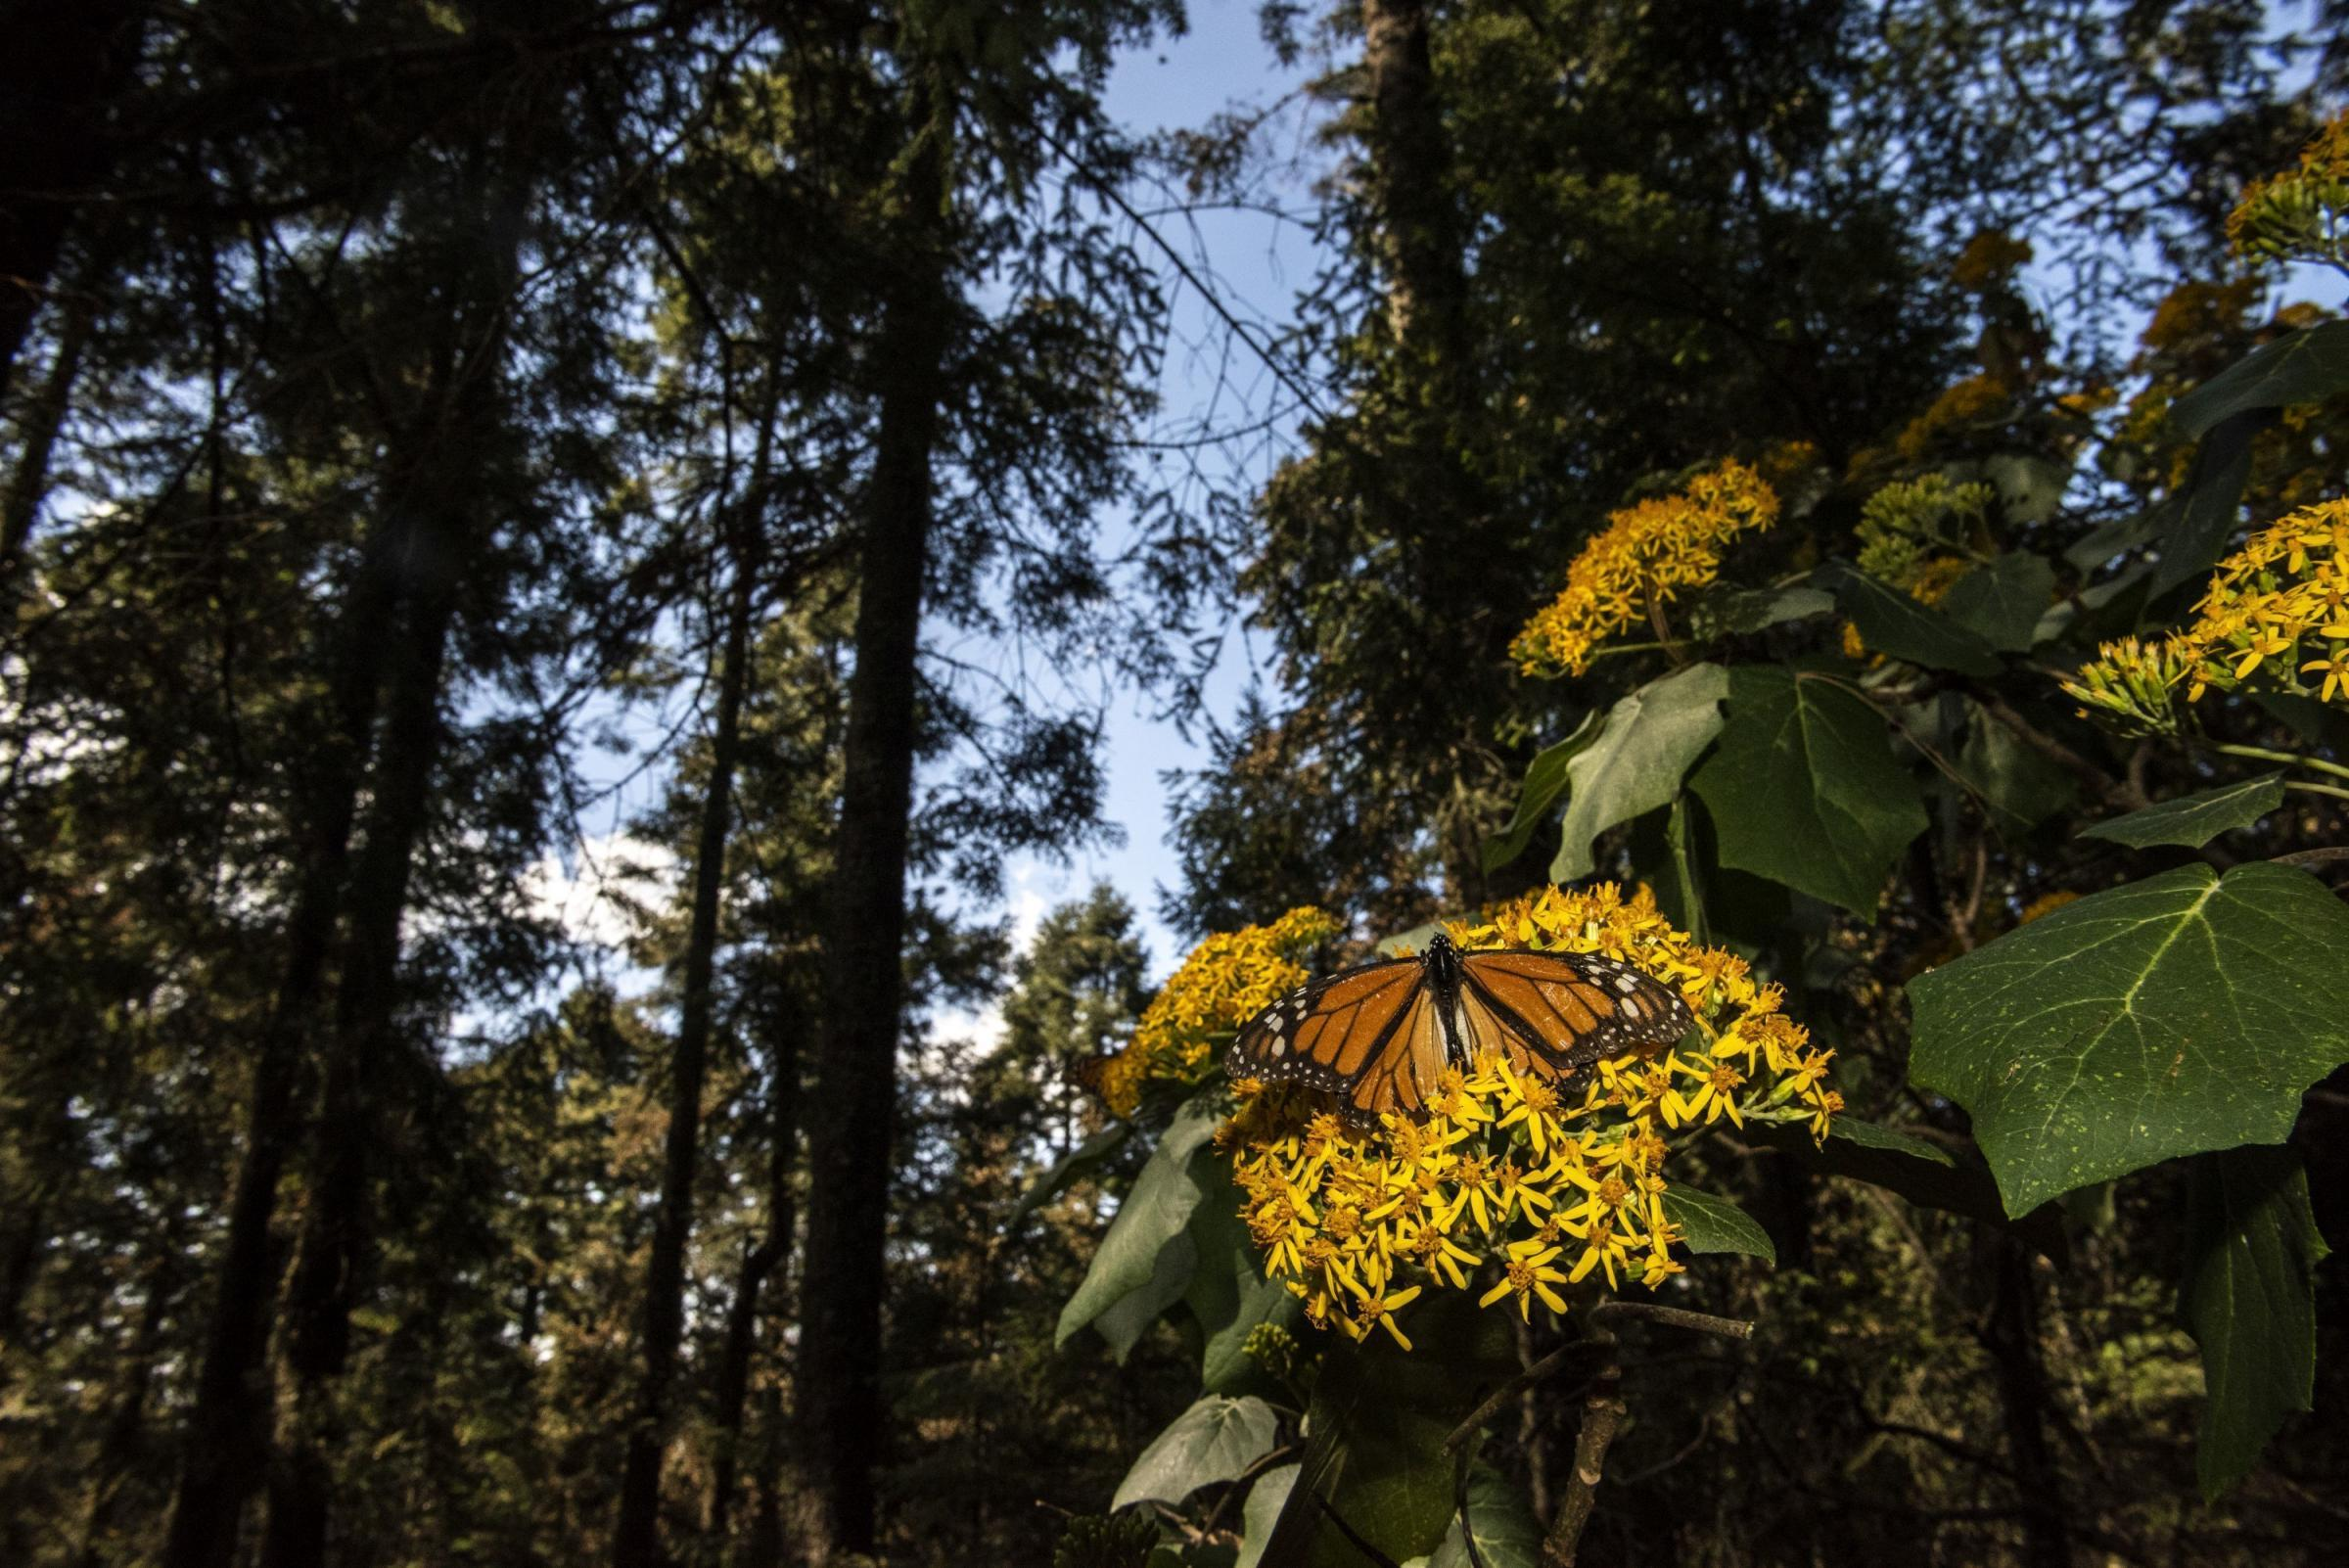 A monarch butterfly at the El Rosario butterfly preserve